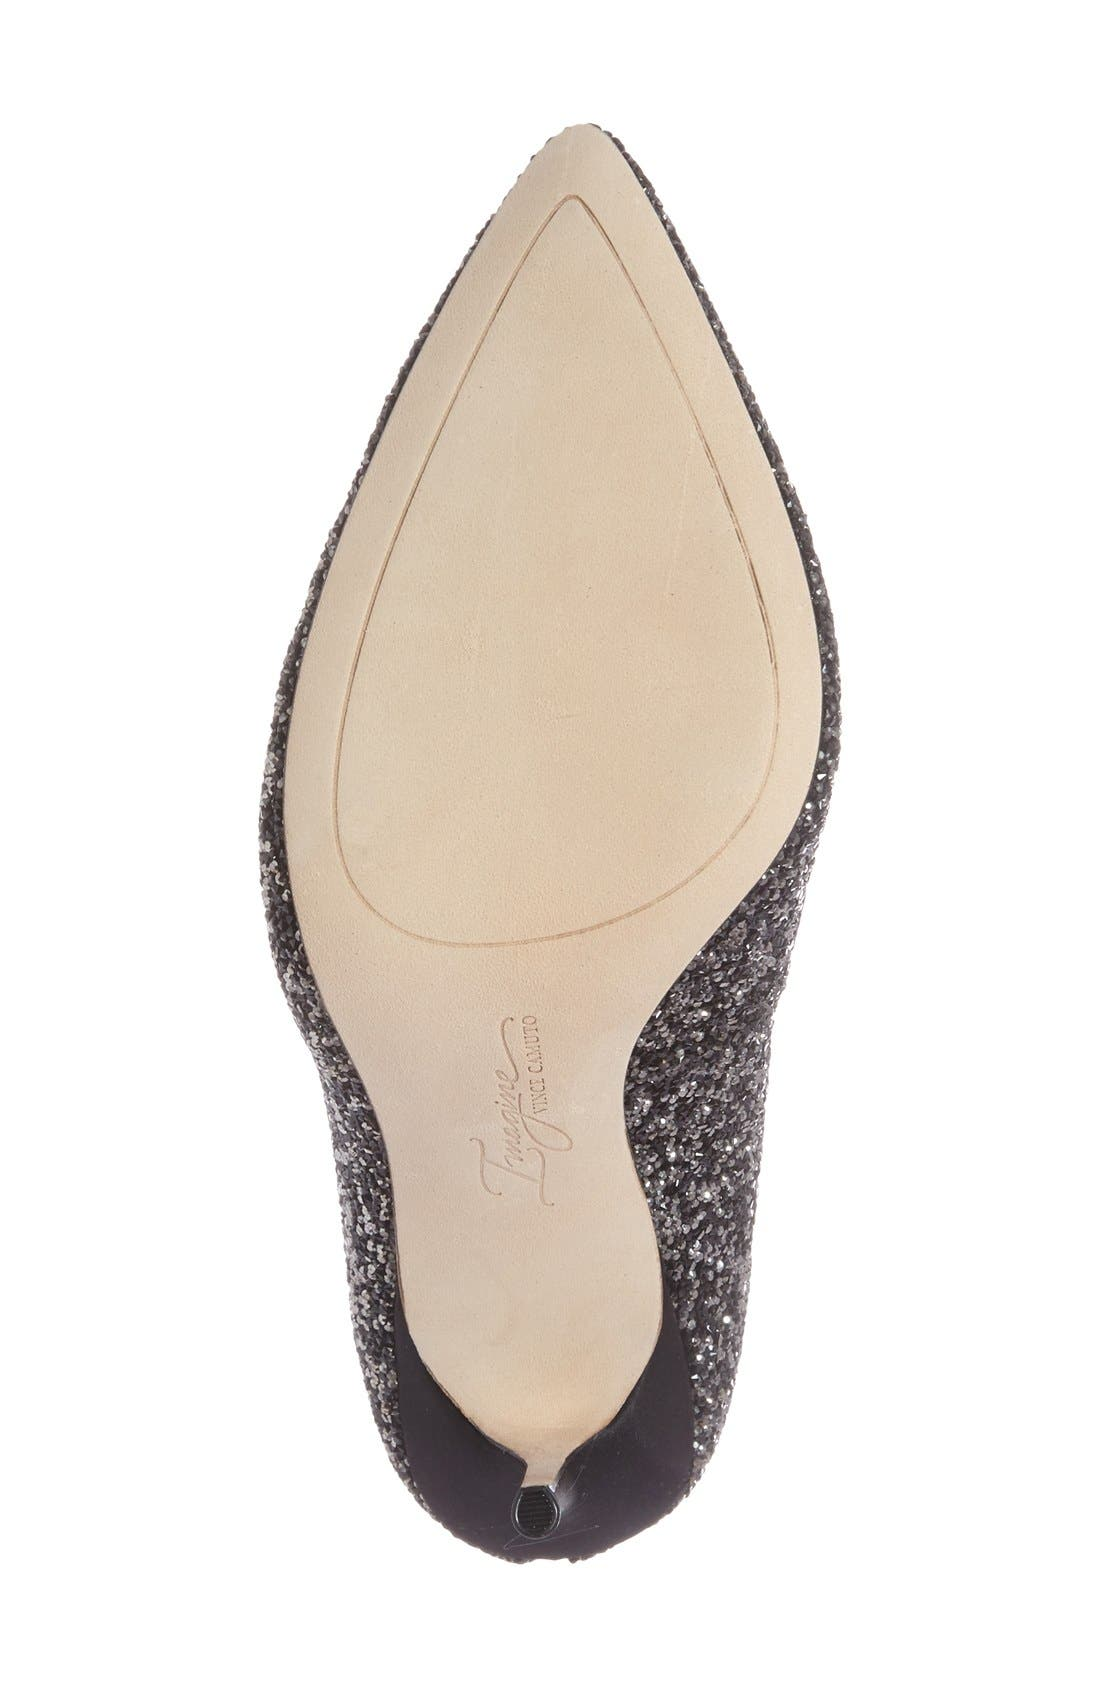 IMAGINE BY VINCE CAMUTO, 'Olson' Crystal Embellished Pump, Alternate thumbnail 4, color, 002